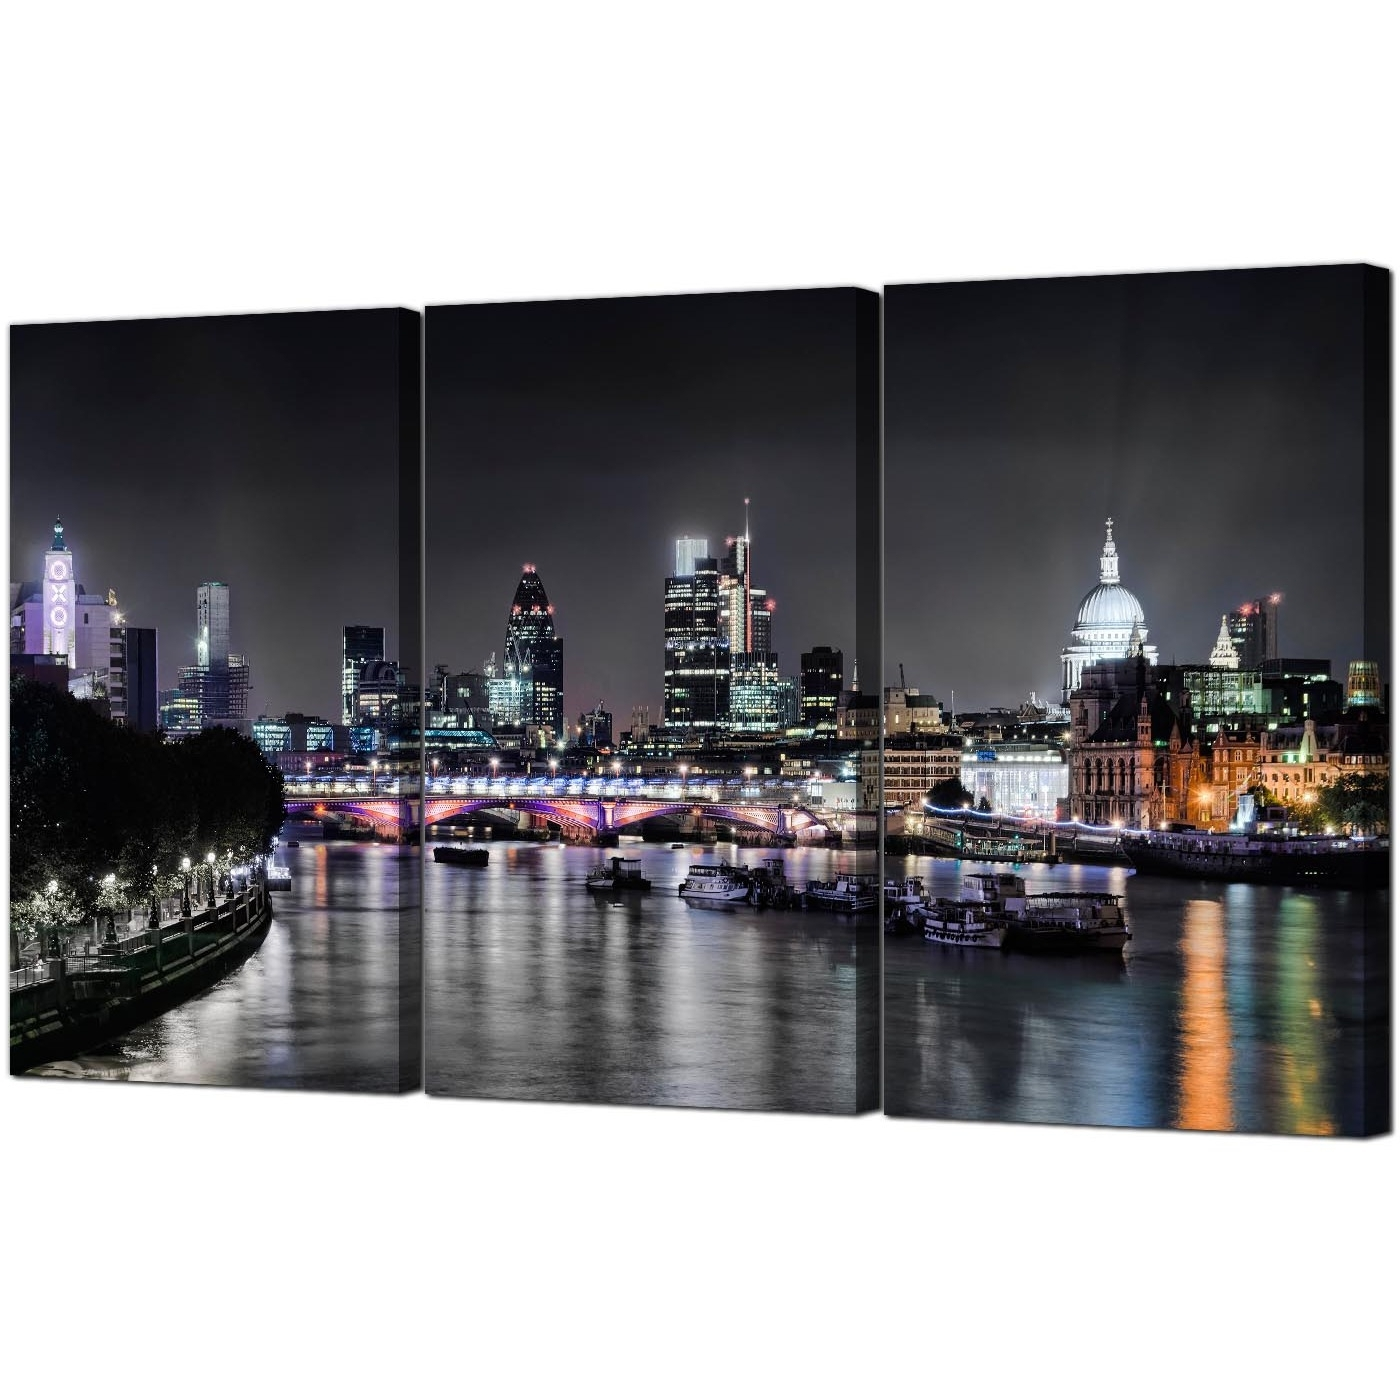 Canvas Wall Art Of London In Trendy Cheap London Skyline At Night Canvas Art 3 Panel For Your Living Room (View 4 of 15)